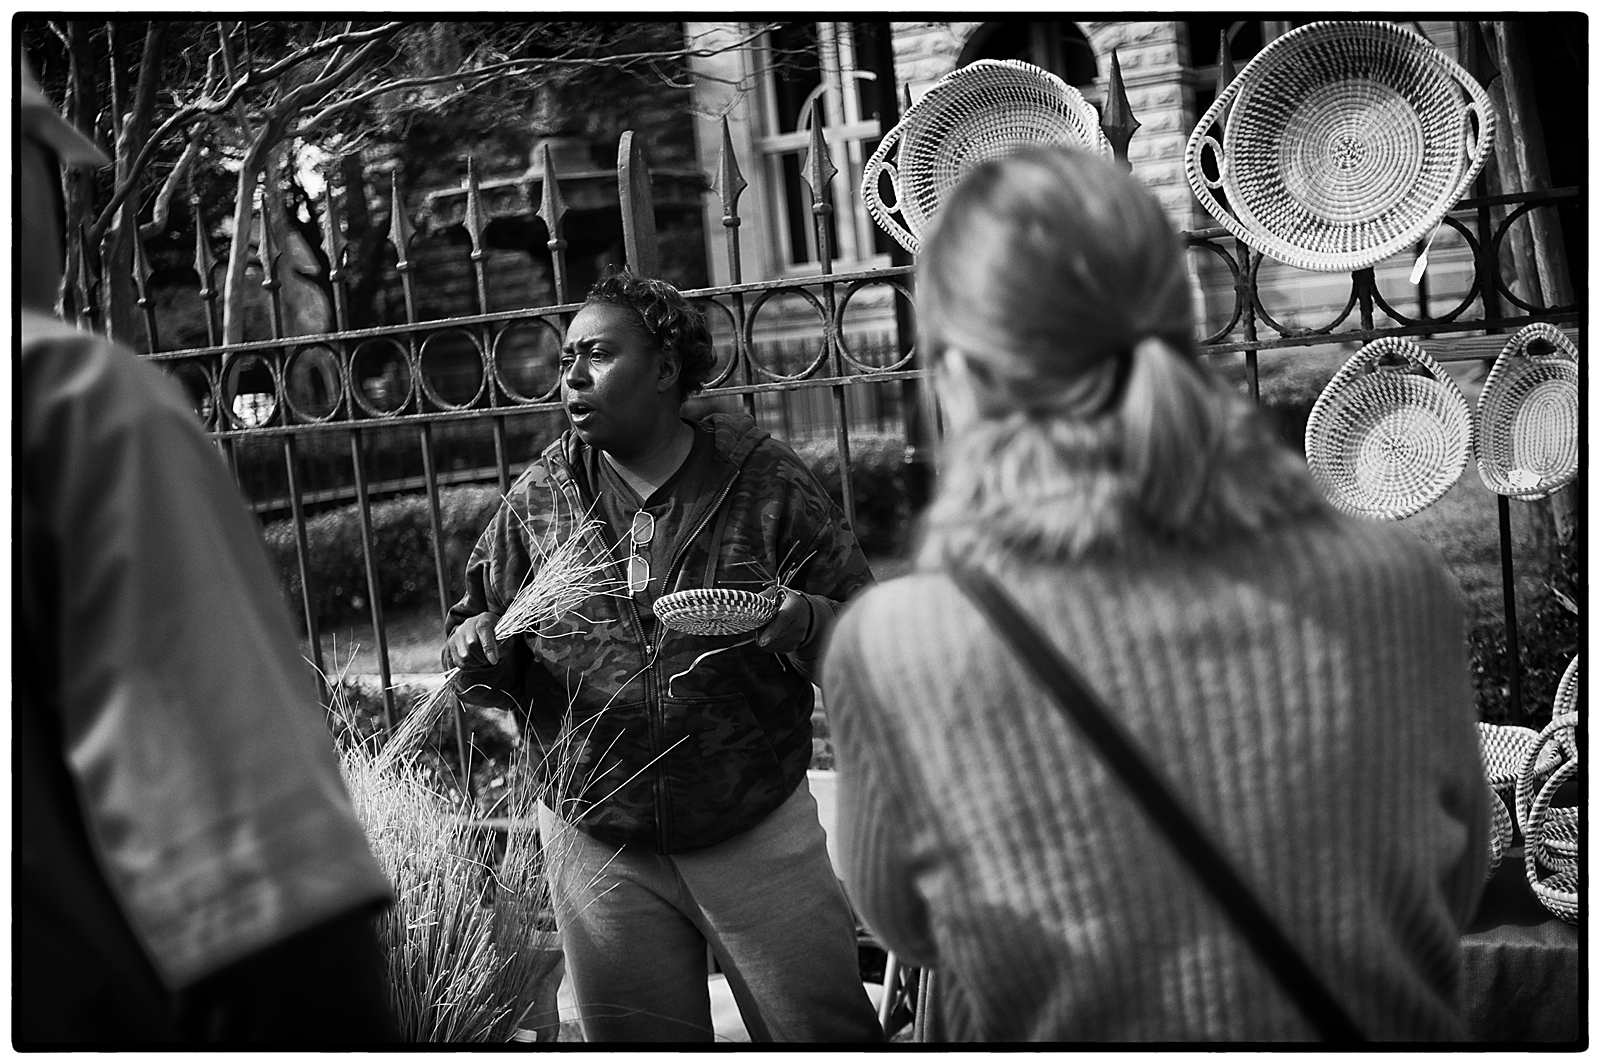 A Gullah sweetgrass basket maker explains the craft to tourists in downtown Charleston, SC.